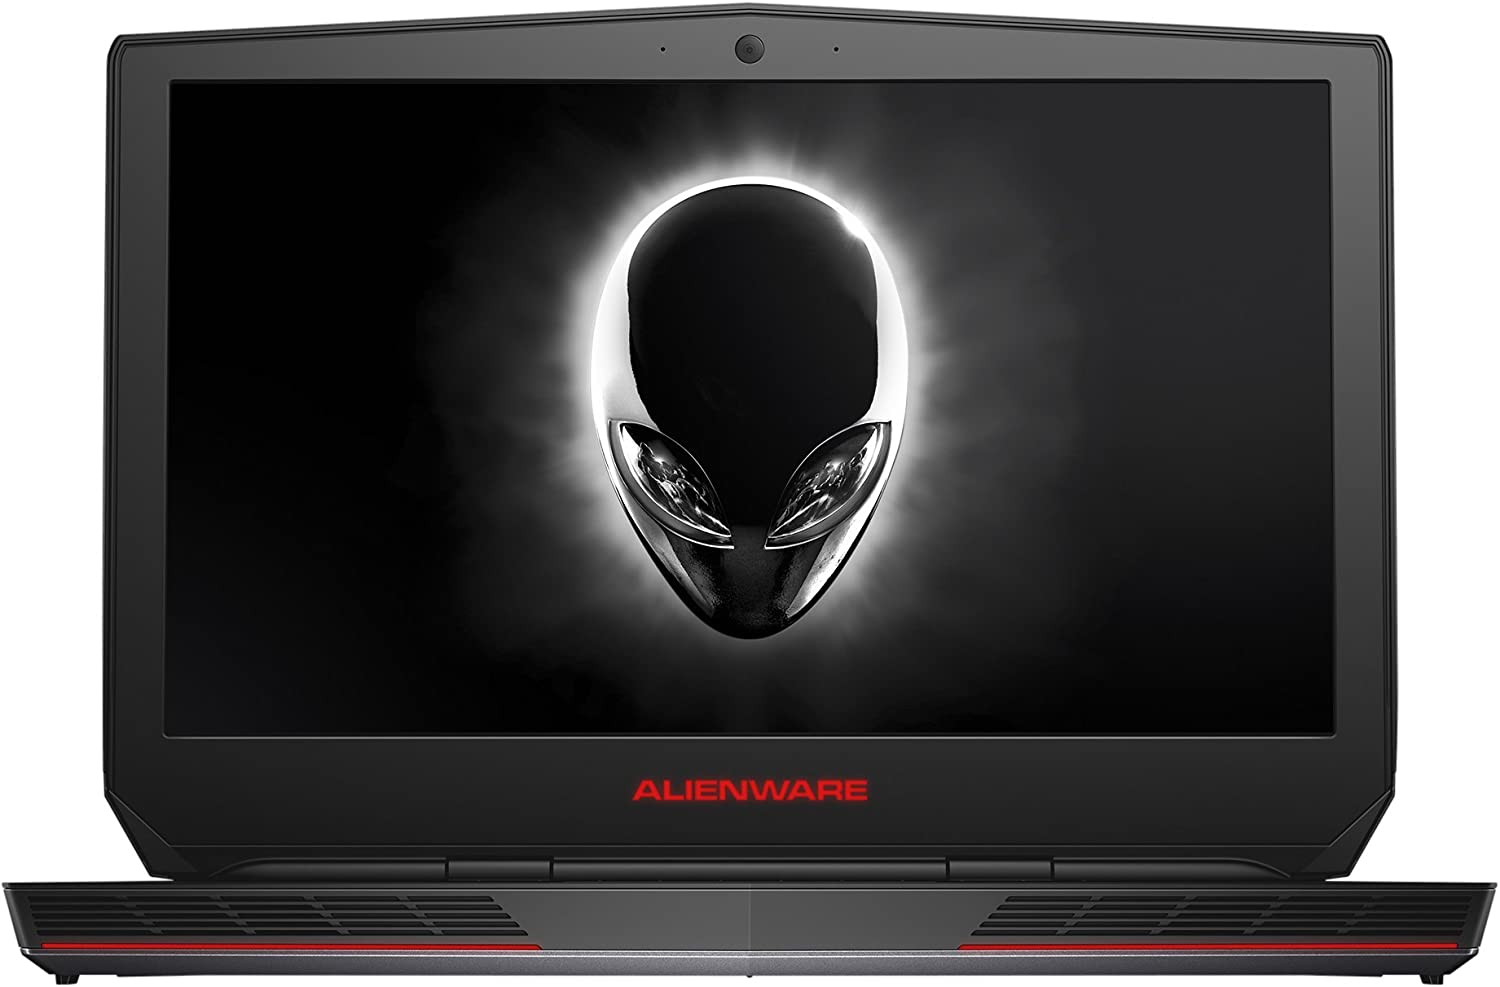 Alienware AW15R2-8469SLV 15.6-Inch UHD (Intel Core i7, 16 GB RAM, 1 TB HDD + 256 GB SATA SSD) NVIDIA GeForce GTX 970M, Windows 10 Home), Silver (Renewed)